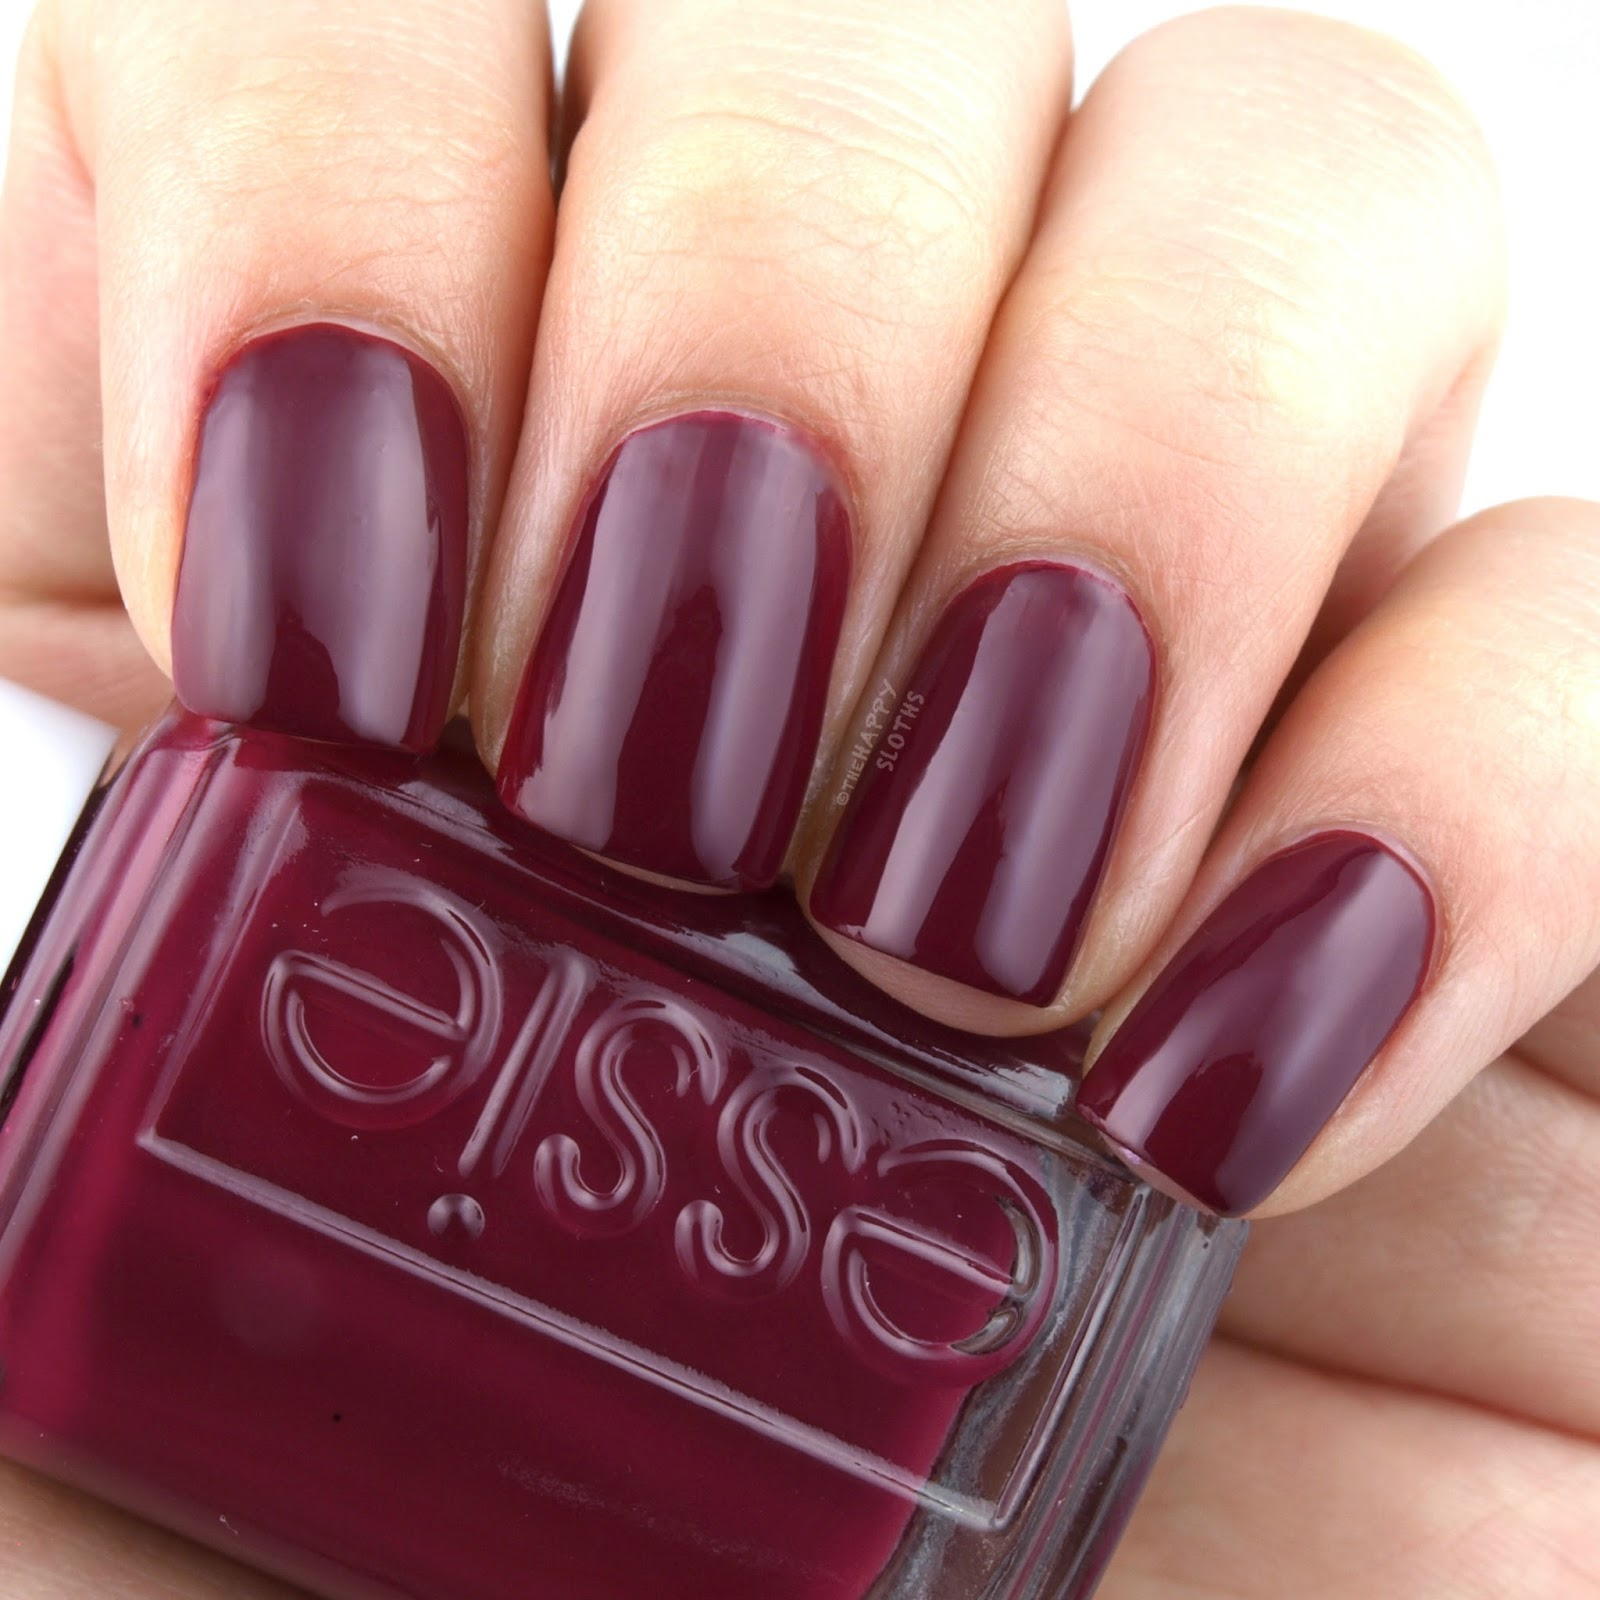 Essie Fall 2017 Collection | Knee-High Life: Review and Swatches